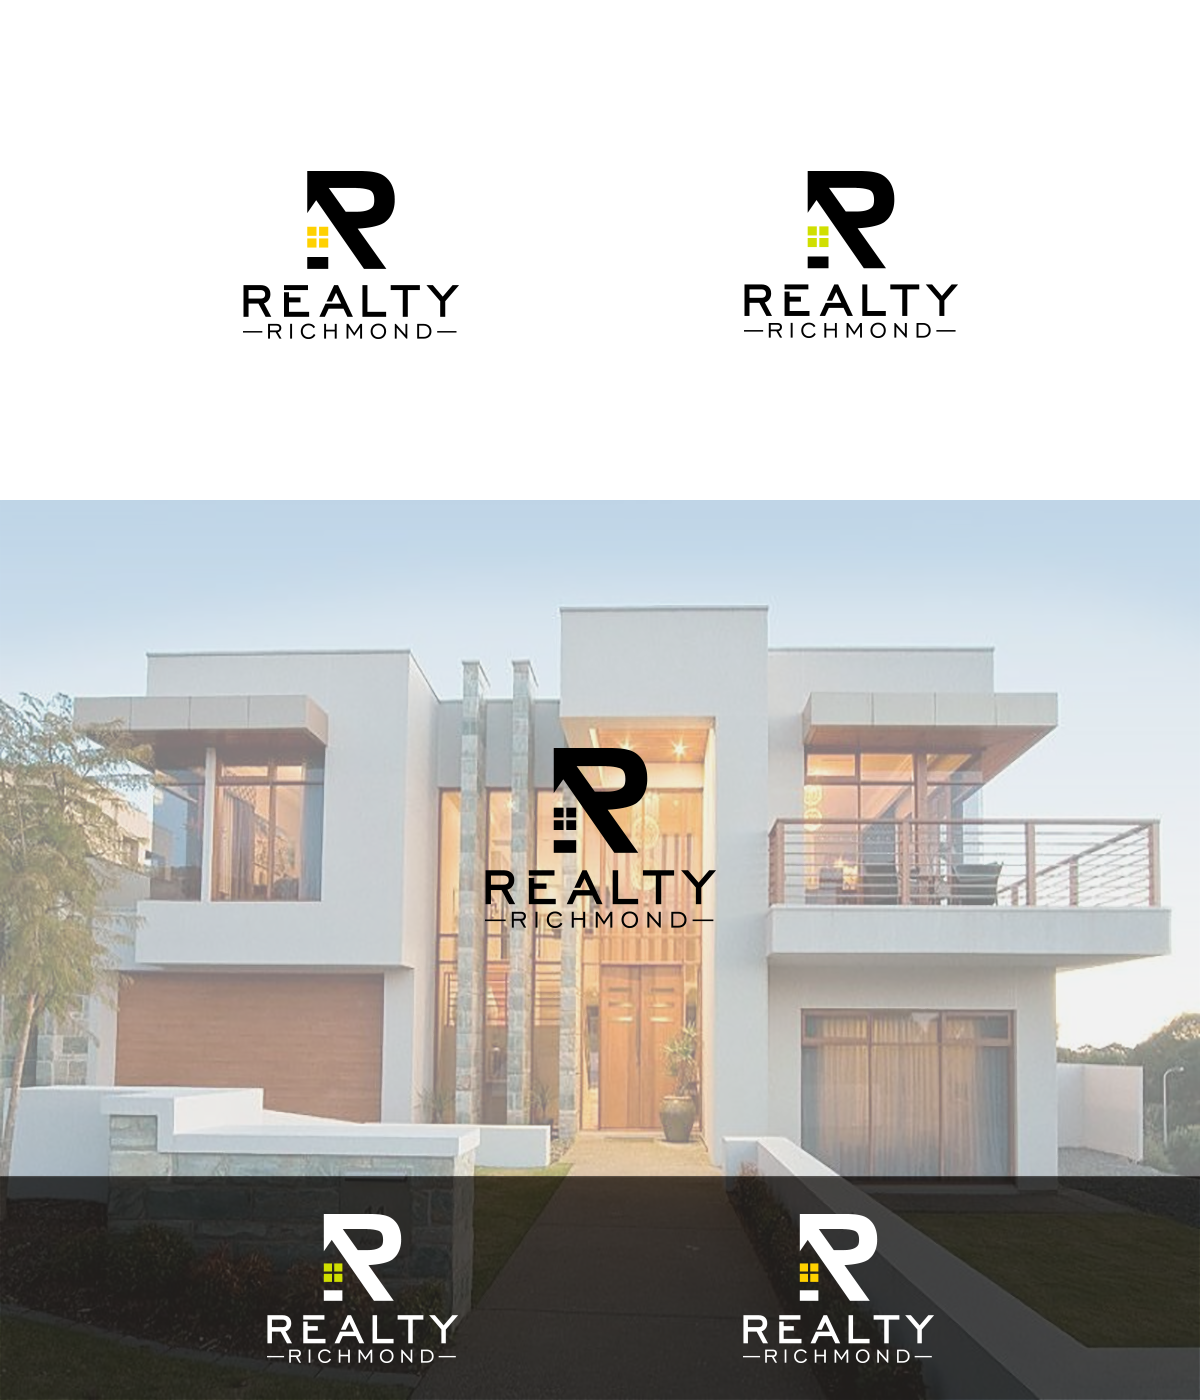 Create a Fresh Logo For a Downtown Realty Co - Clean, Simple Design with Bold Colors